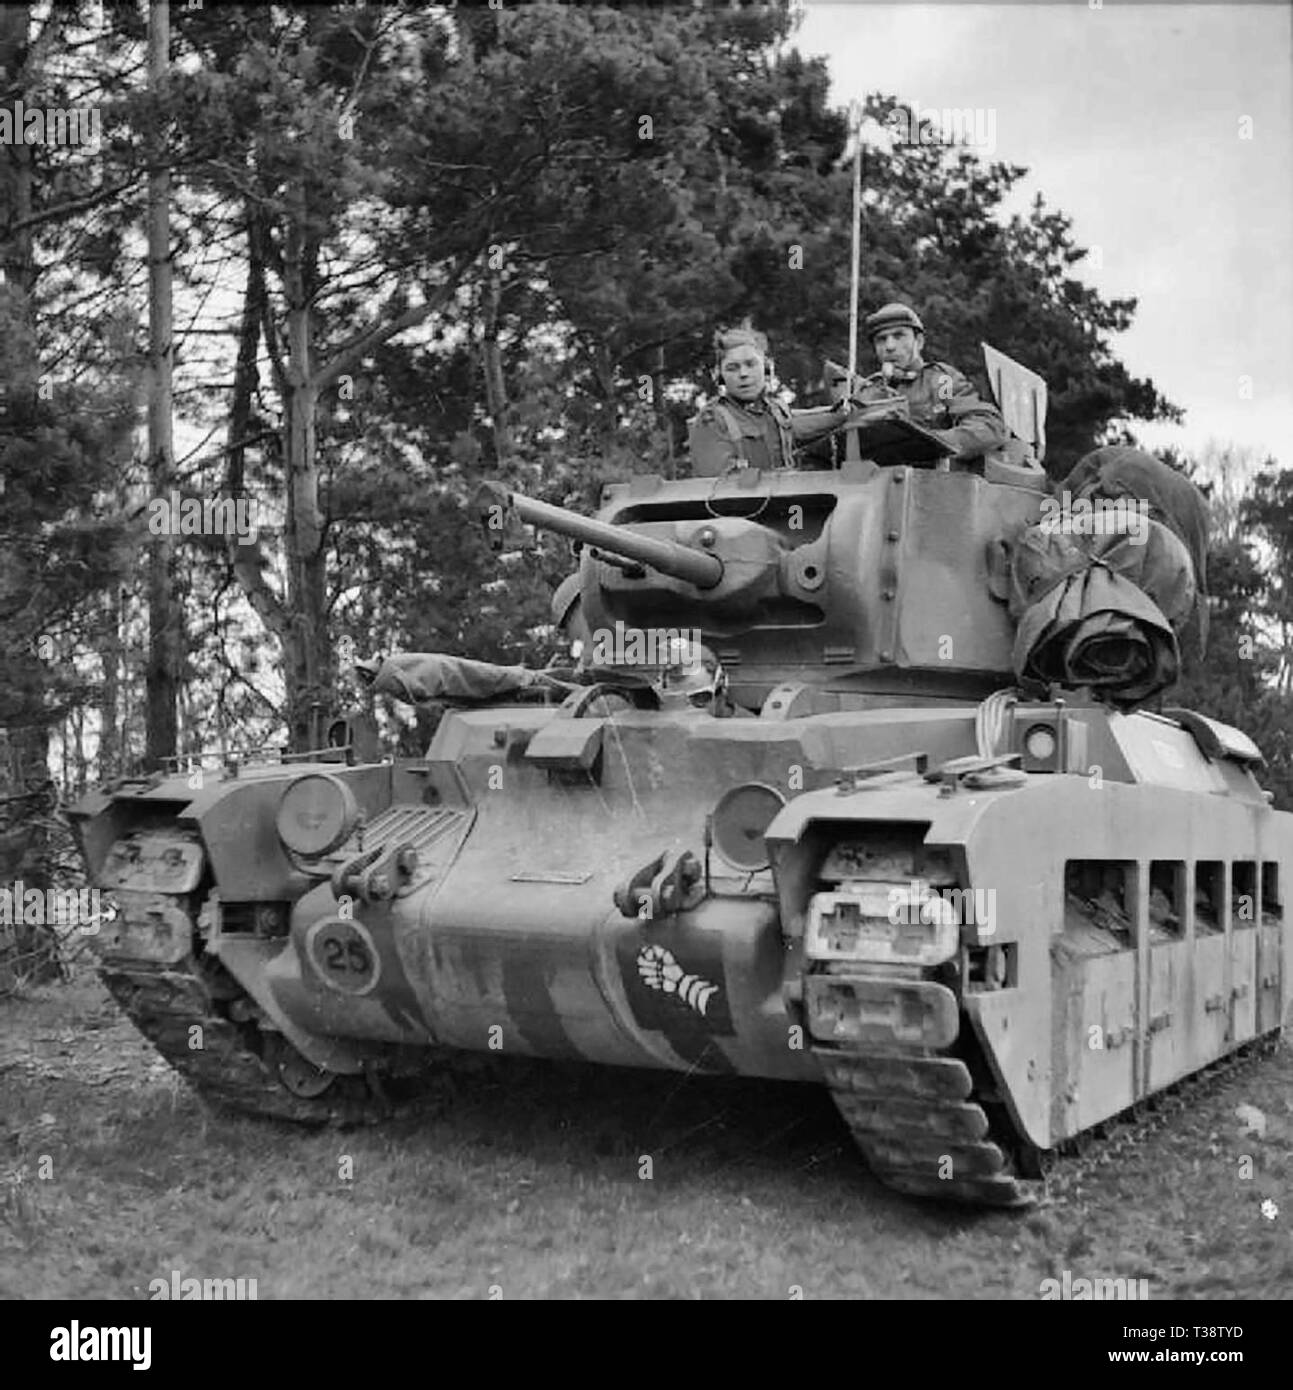 The British Army in the United Kingdom 1939-45 Matilda tank of 6th Armoured Division during large-scale manoeuvres near Thetford in Norfolk, 26-28 April 1941. - Stock Image